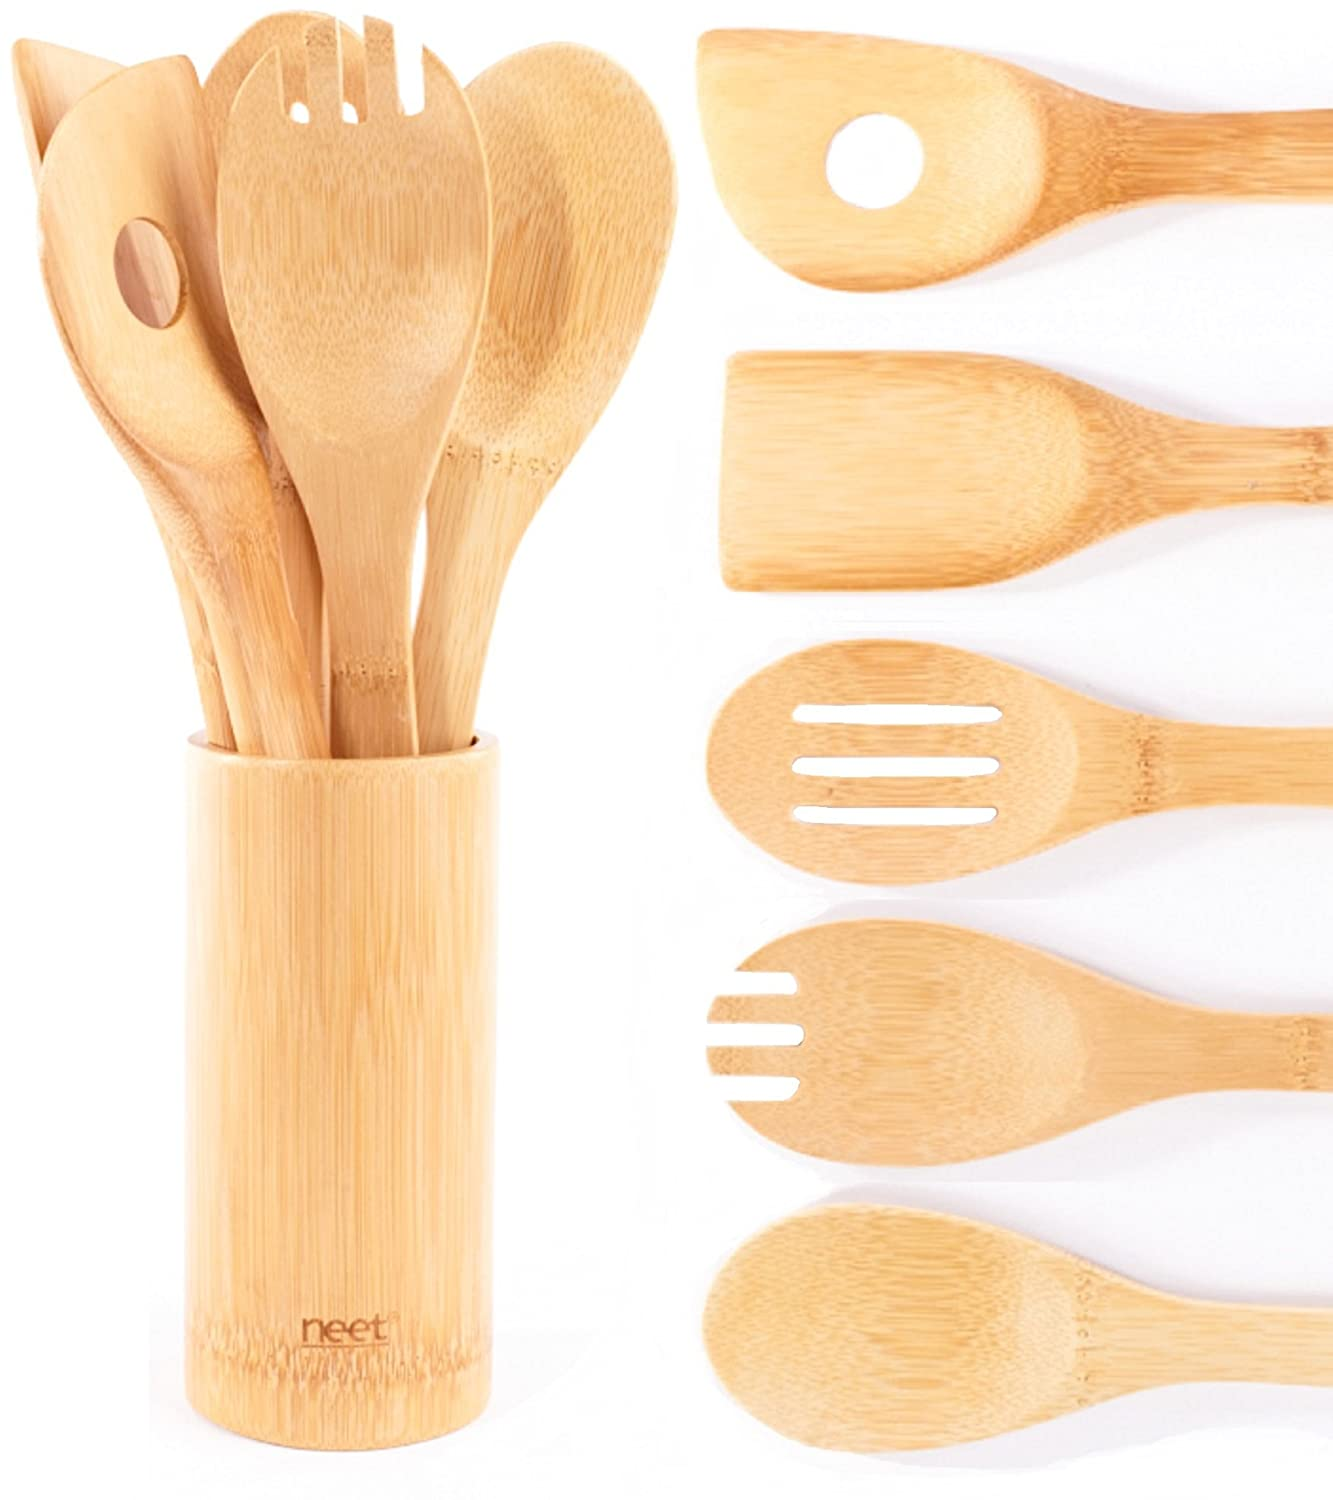 Image result for wooden utensils